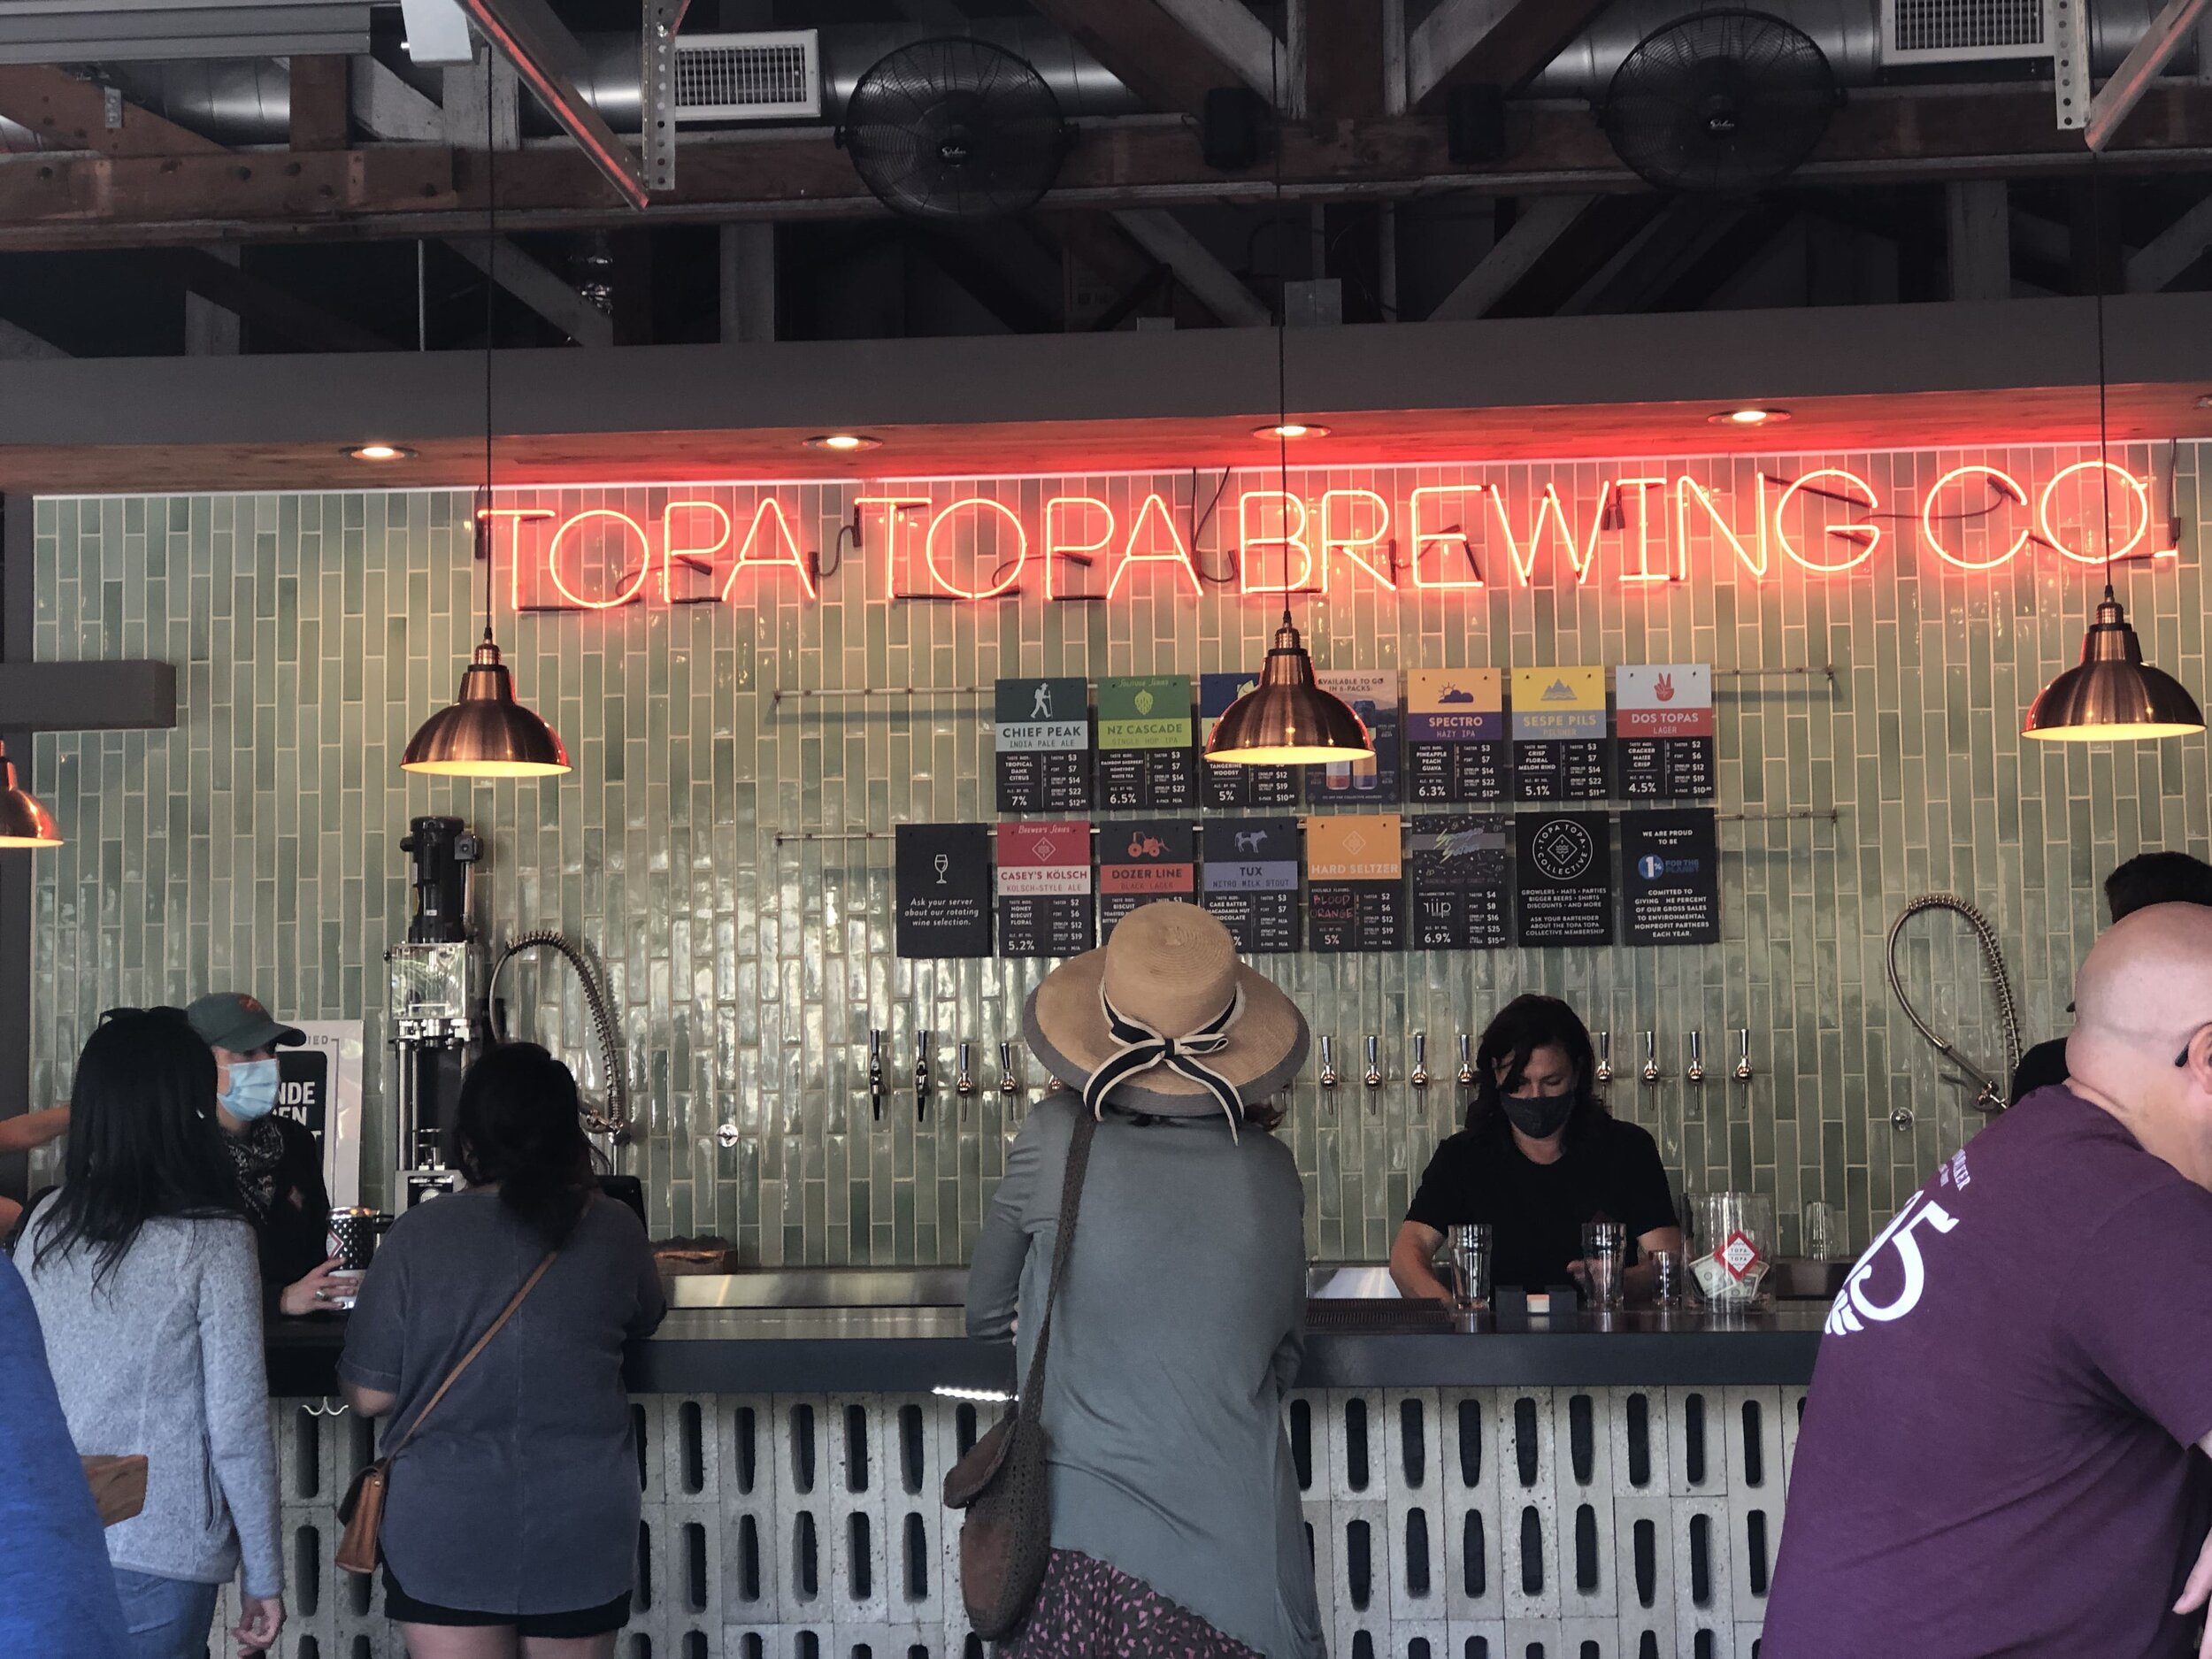 Head to Topa Topa Brewing Co. and Little Sama Ojai for the best Ojai food and beer combo